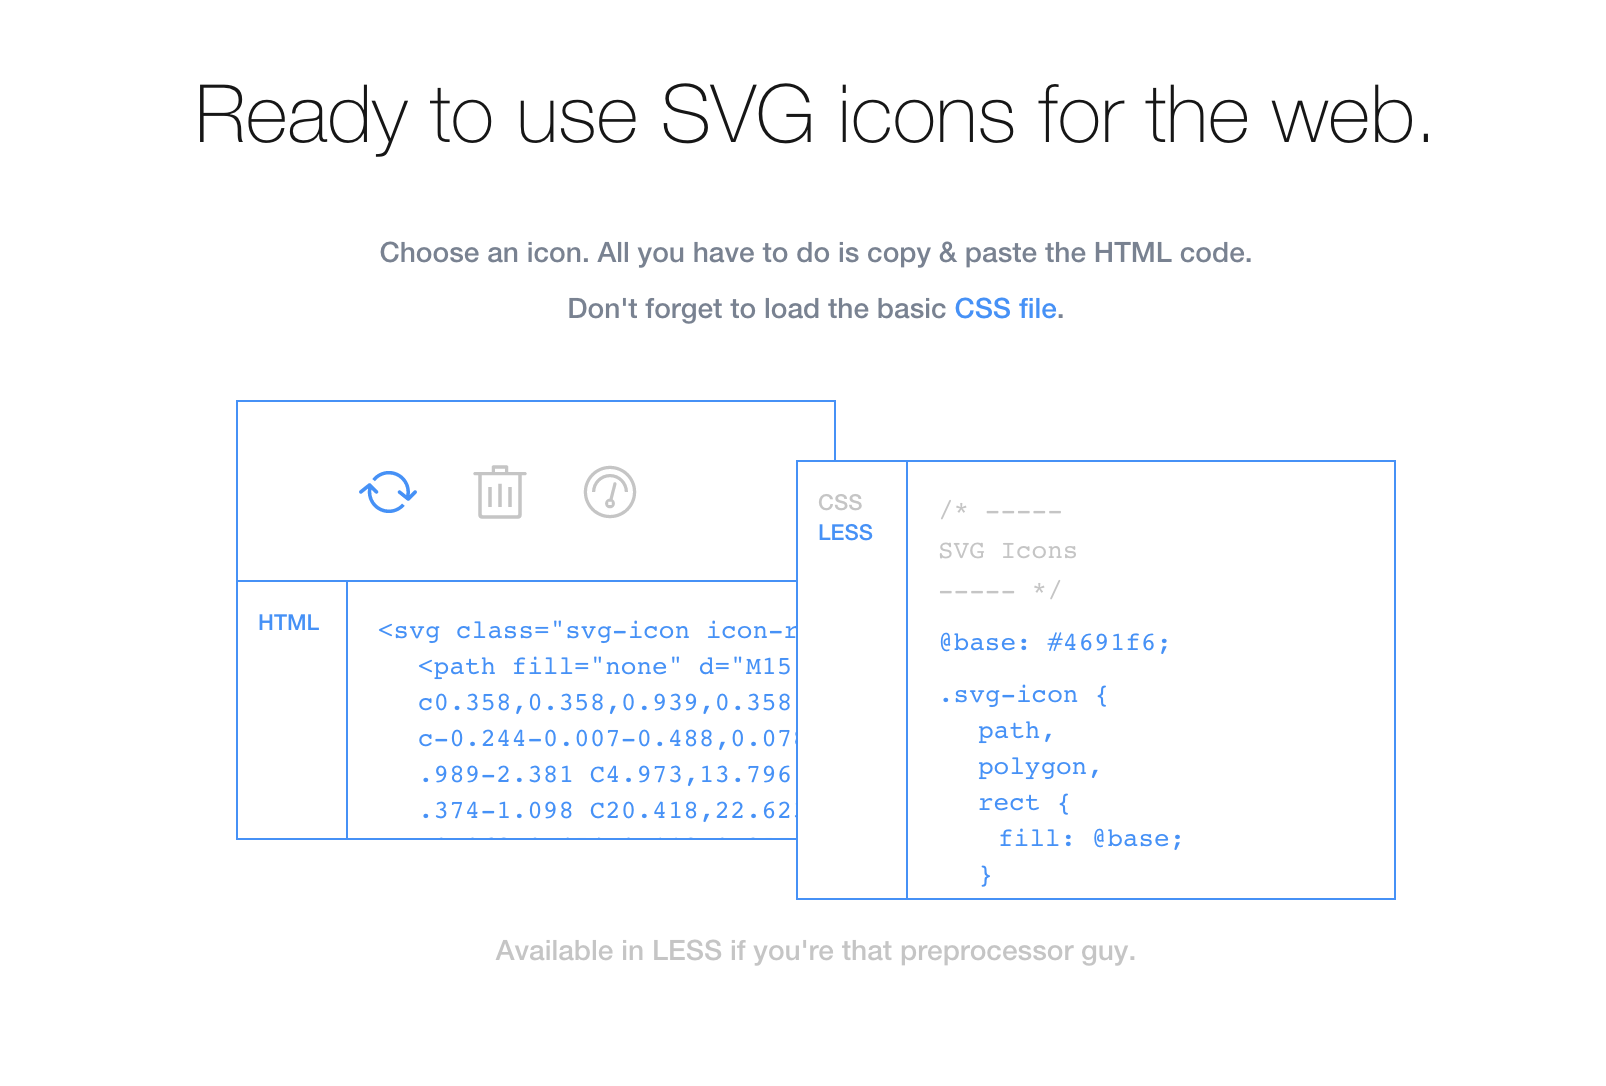 Ready to use SVG icons for the web Html code, Coding